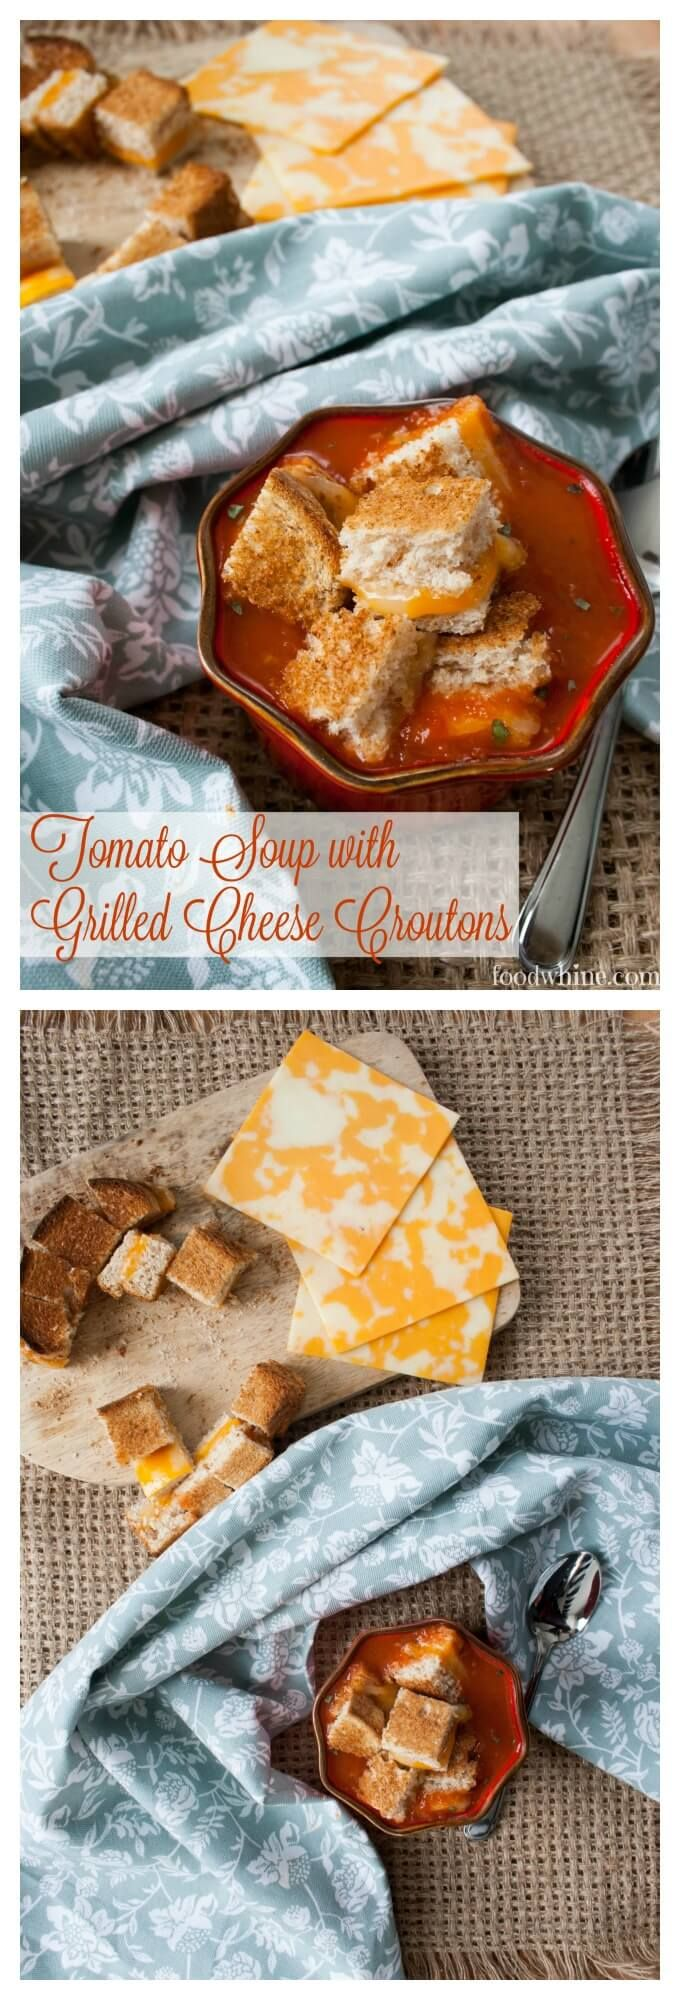 Easy Tomato Soup with Grilled Cheese Croutons. A simple recipe for lunch or dinner. Comfort food at its finest.